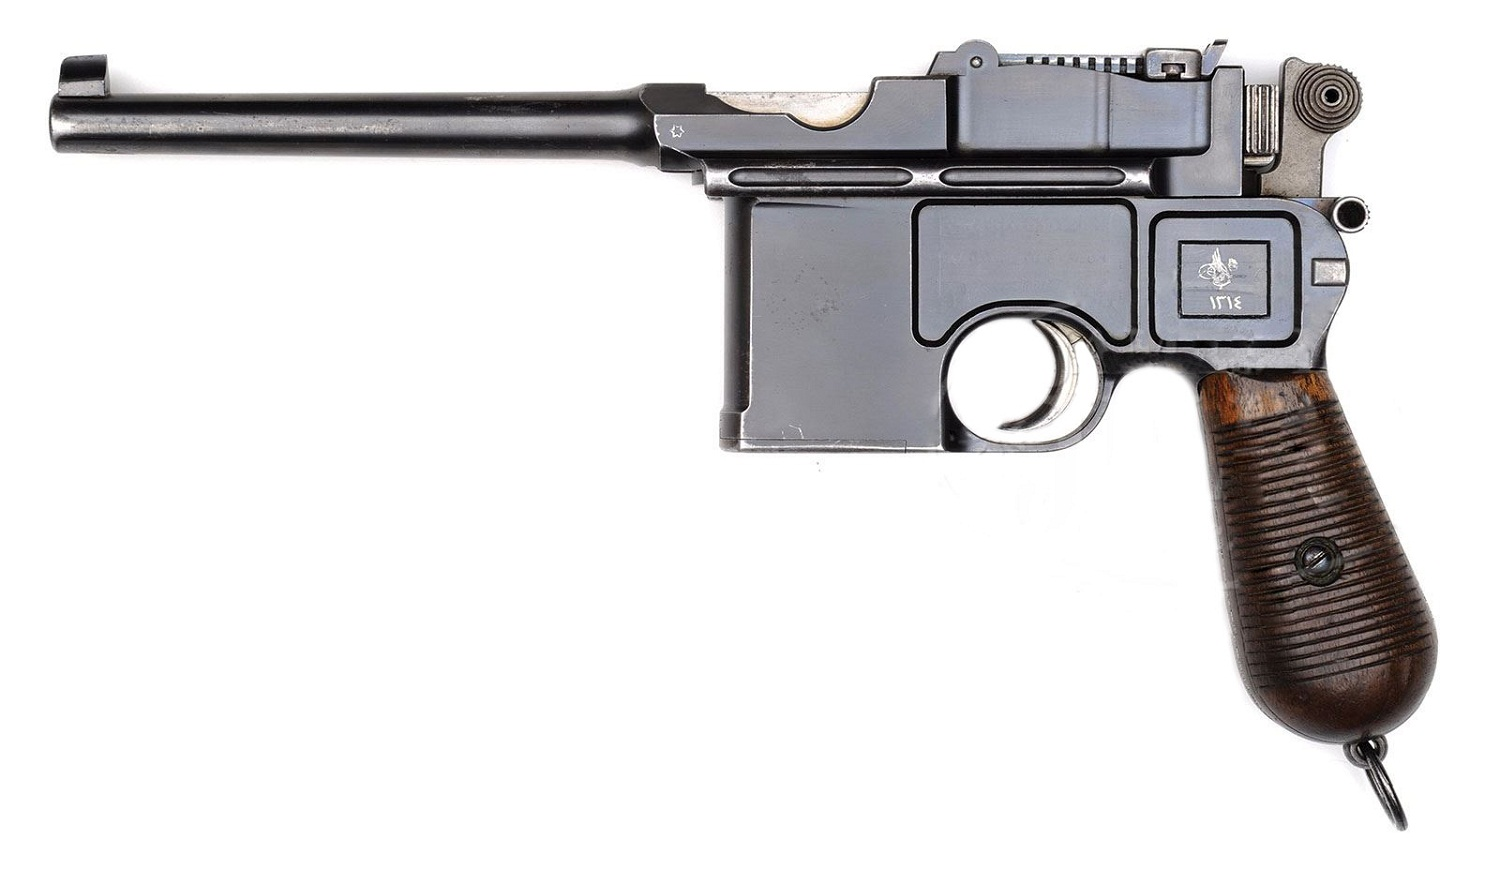 Mauser C96 contract for Cone Hammers was a Turkish